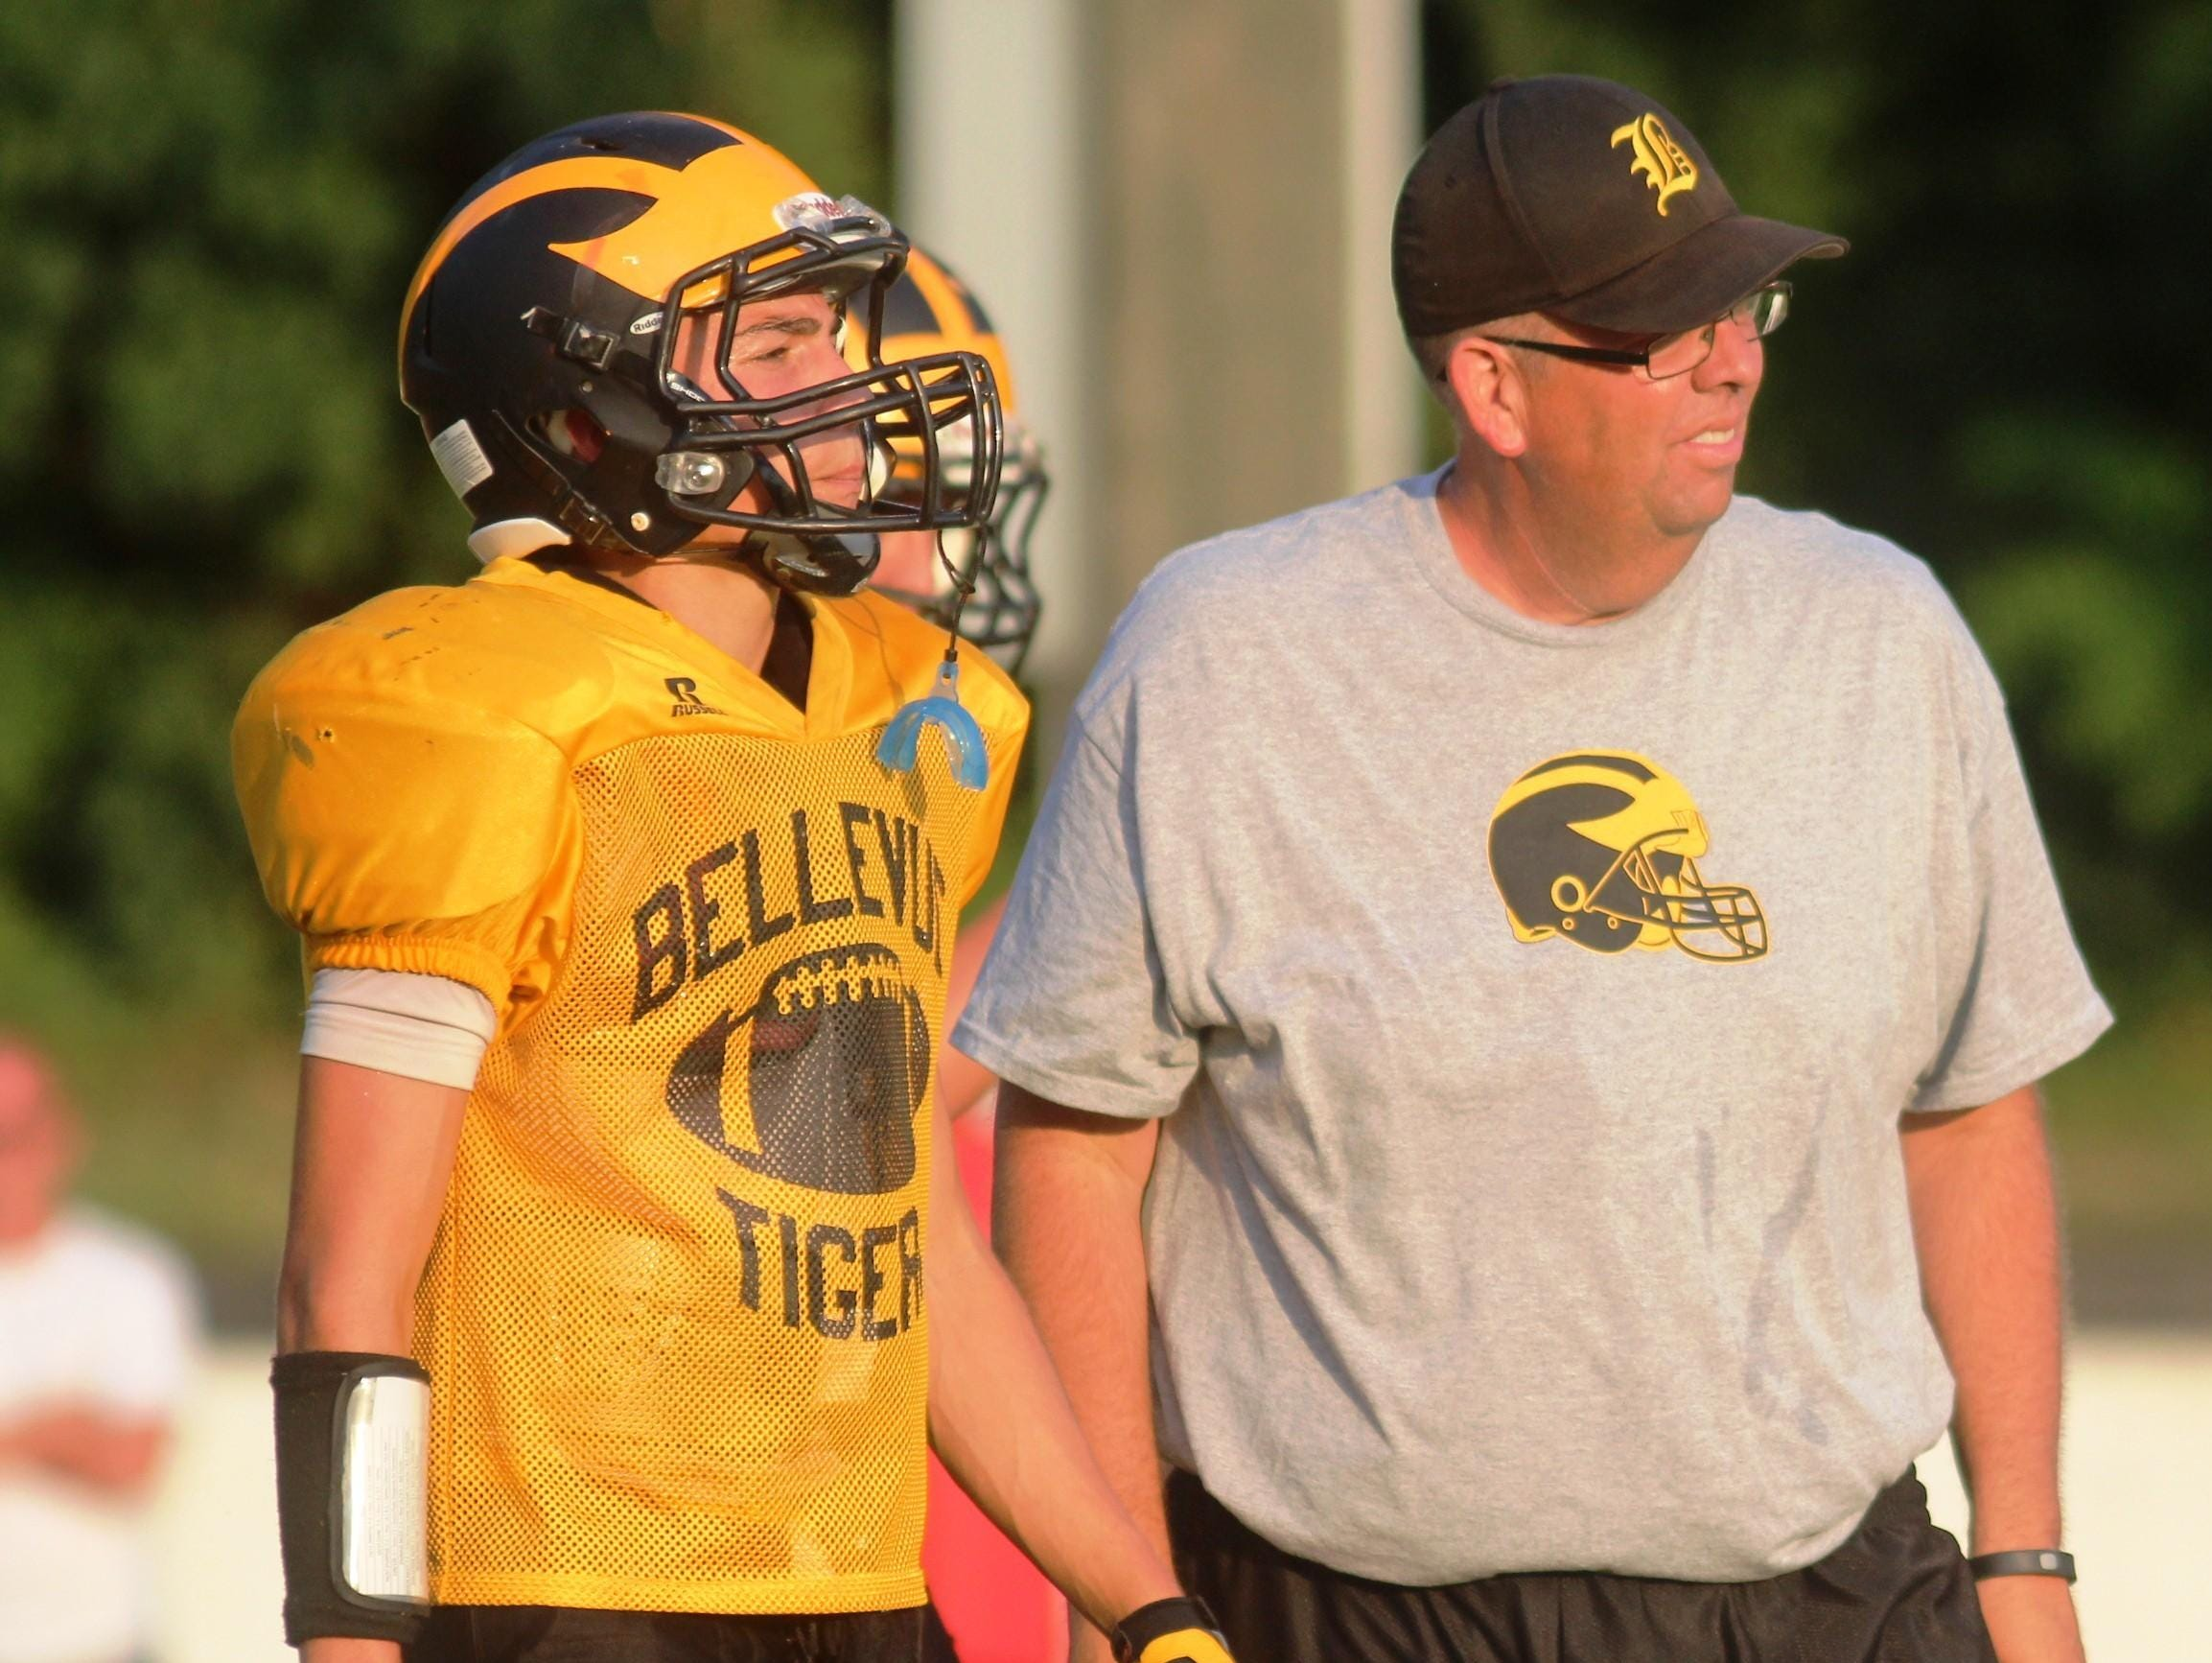 Bellevue head coach Woody McMillen watches the scrimmage.